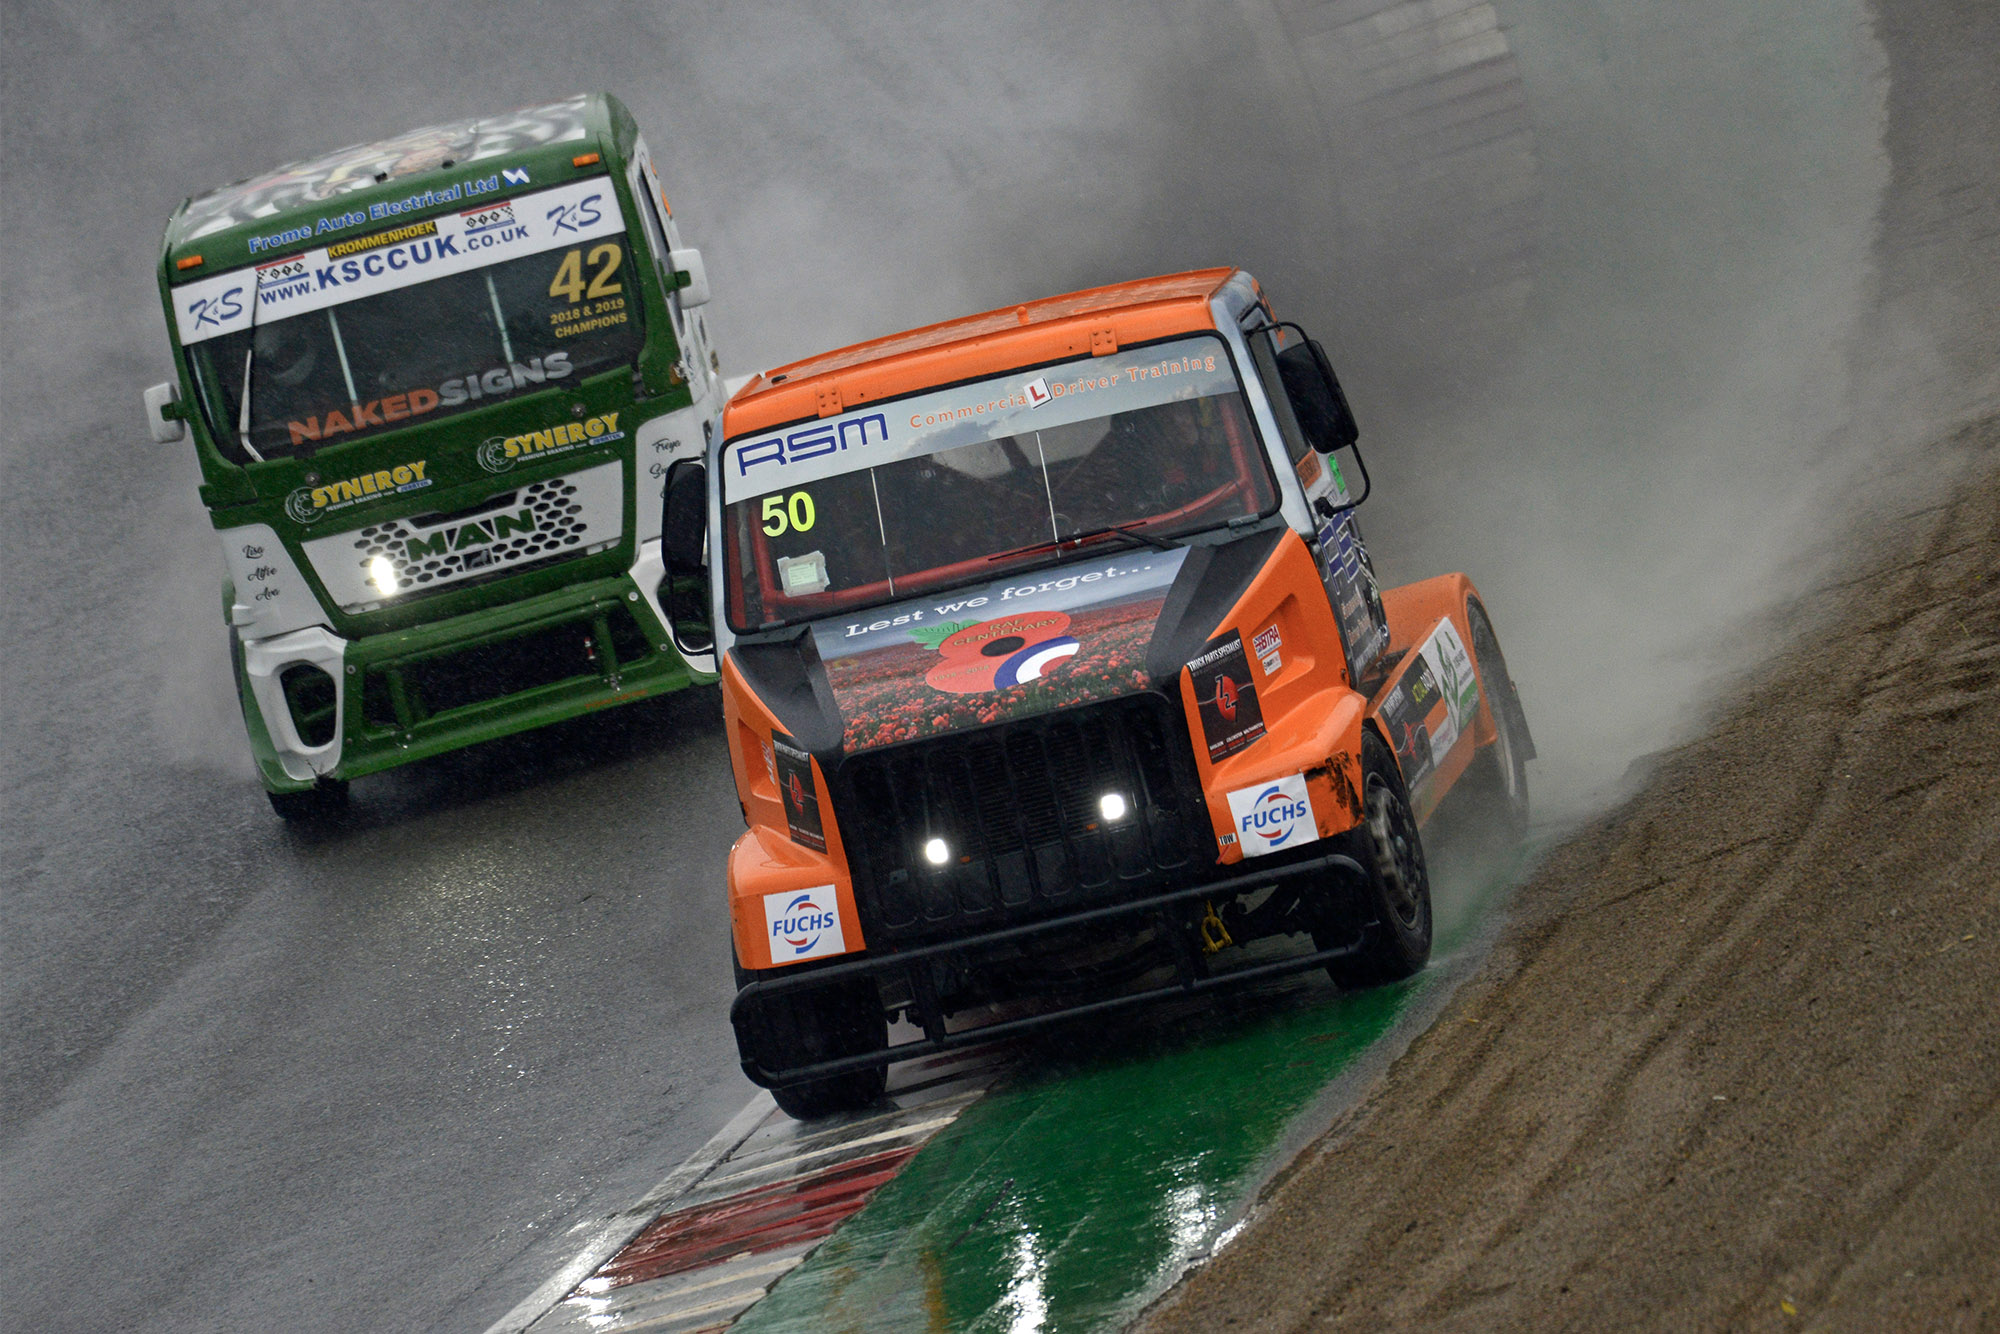 British Truck Racing Association Championship racing from Brands Hatch